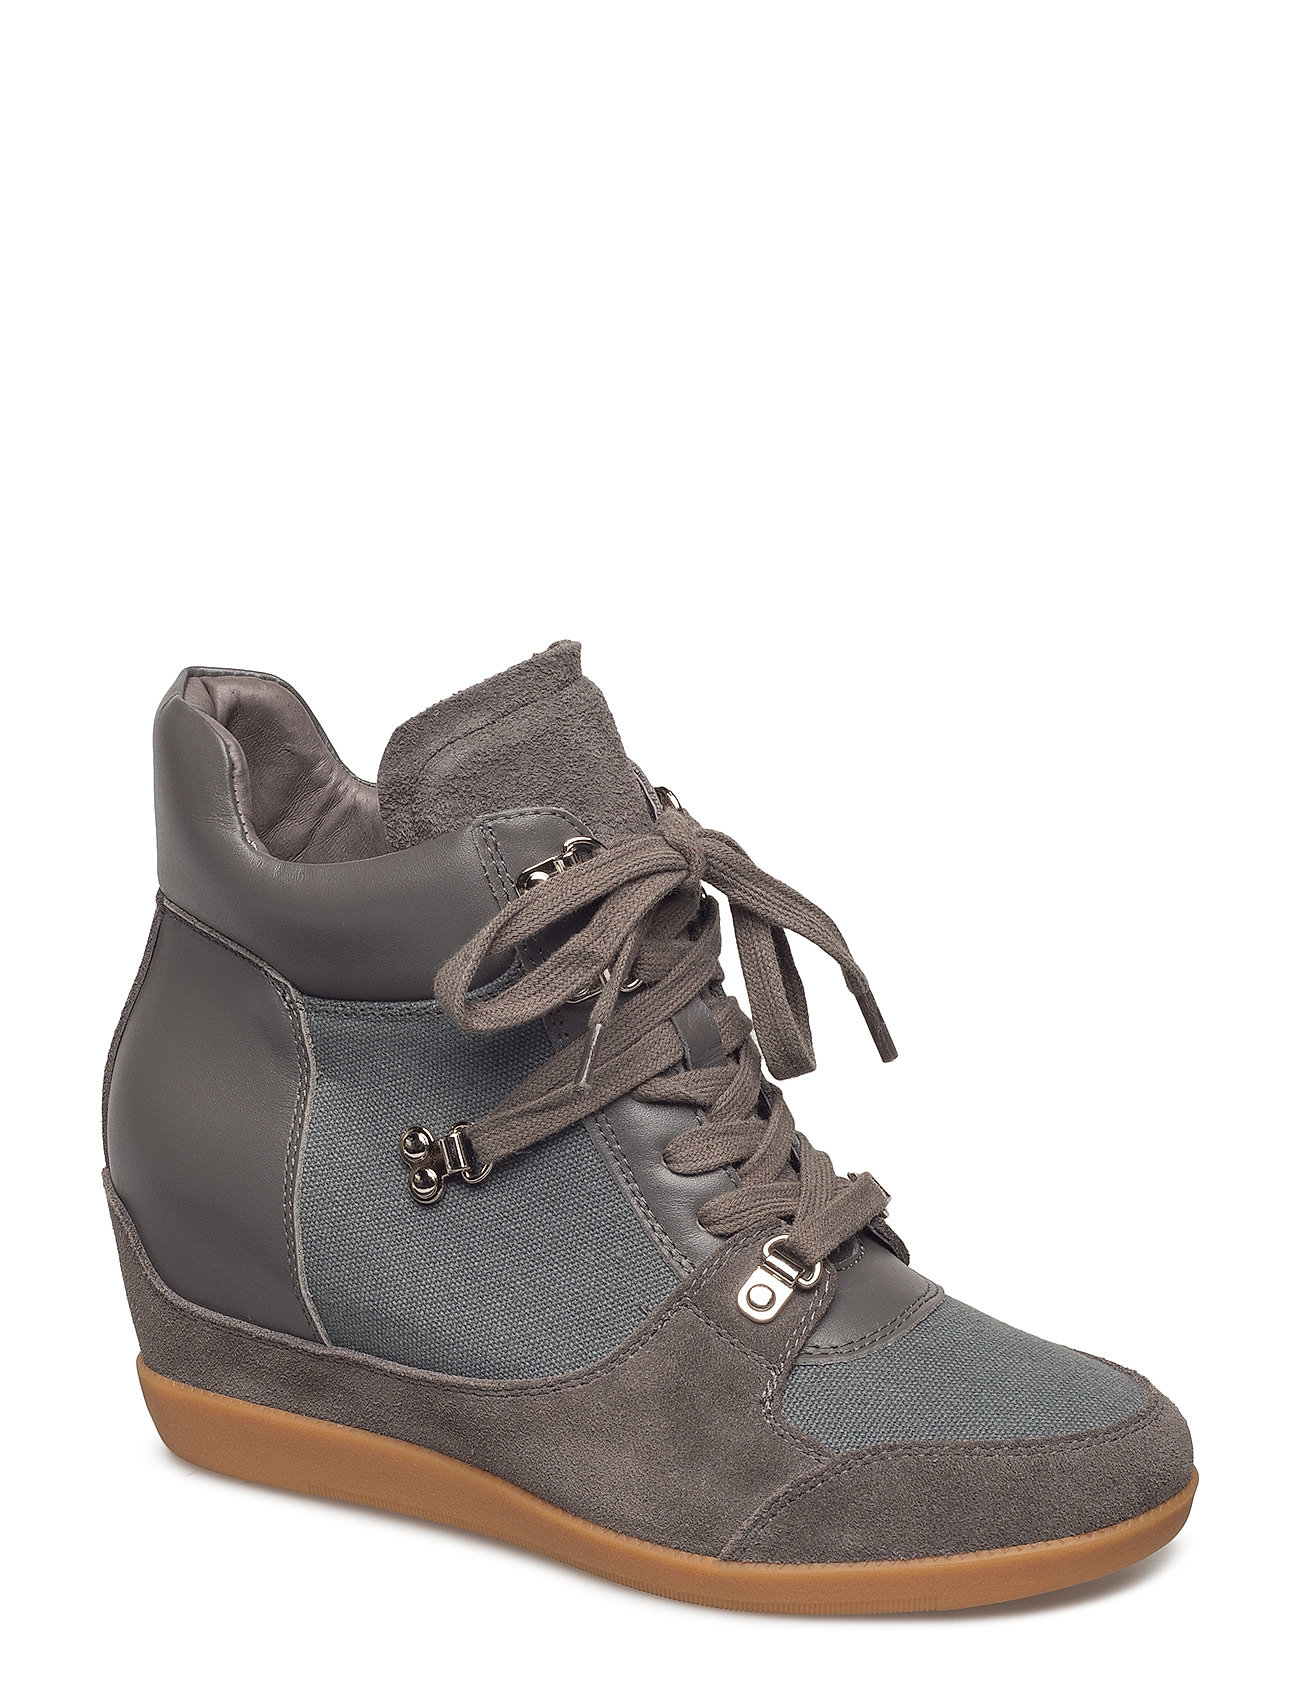 Image of Emmy Hike Shoes High-top Sneakers Grå Shoe The Bear (3413096341)